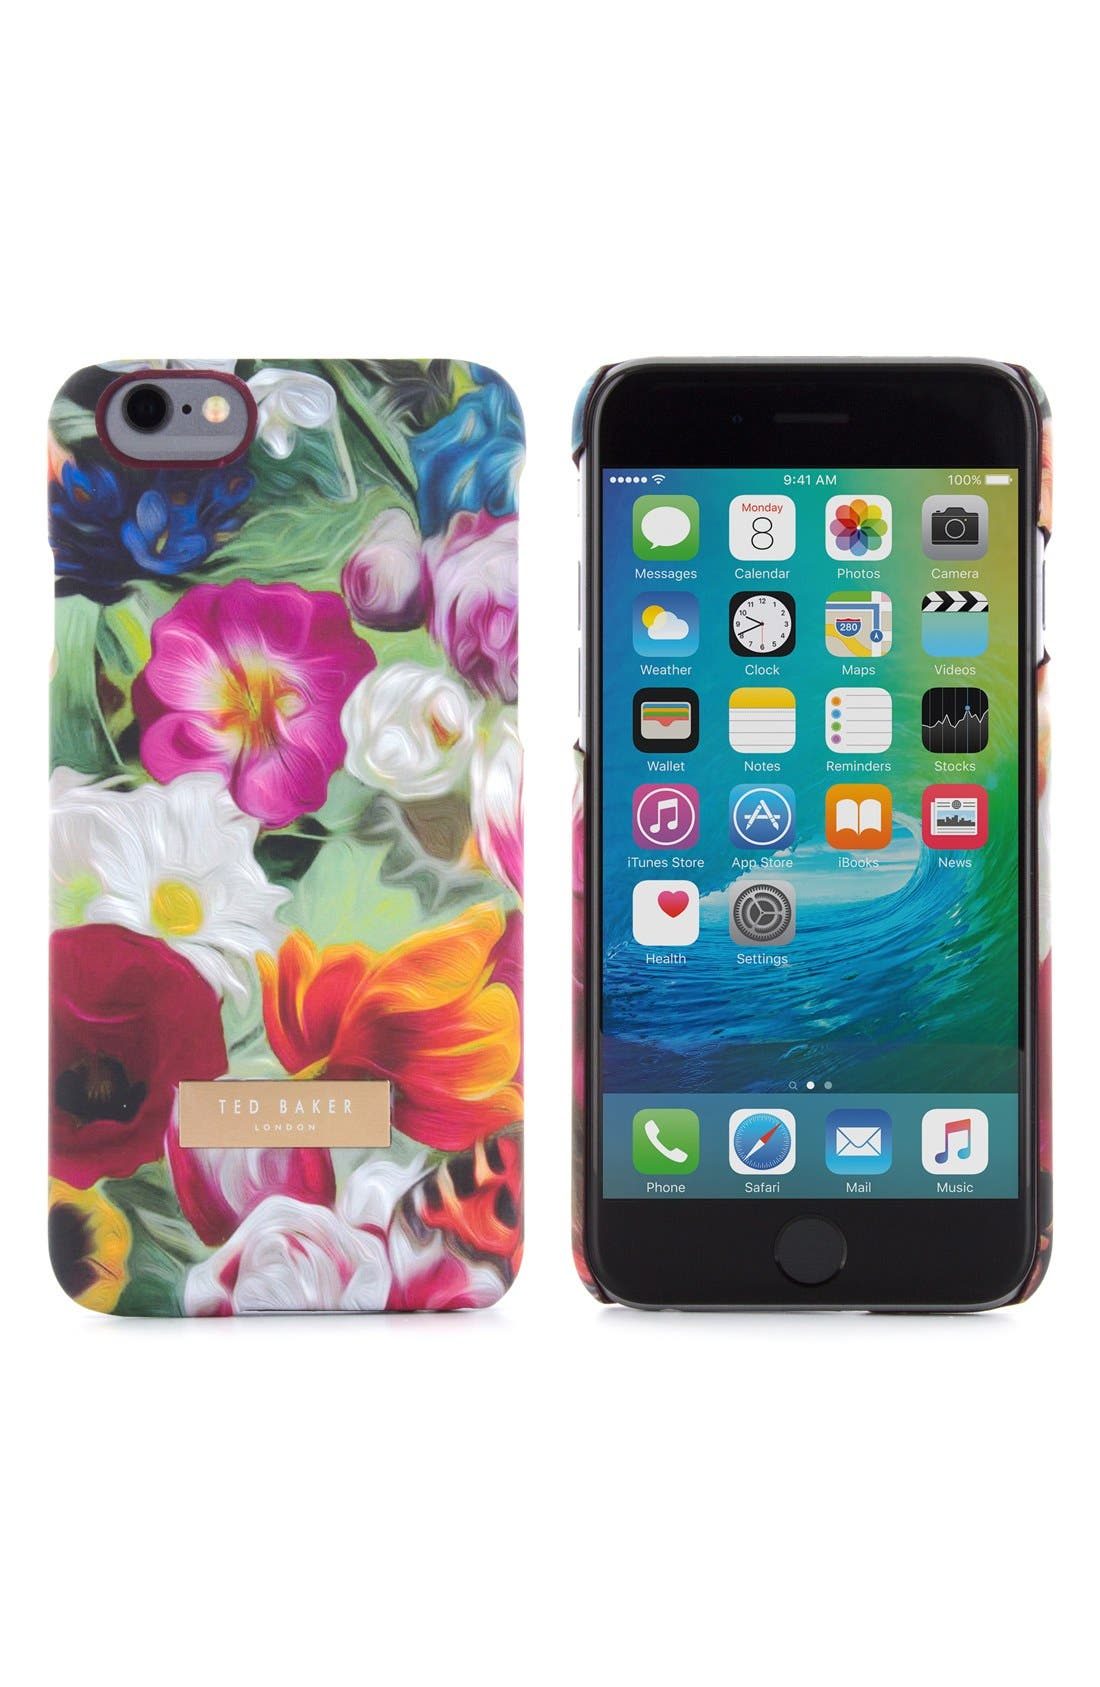 Alternate Image 1 Selected - Ted Baker London iPhone Floral Swirl 6/6s Case